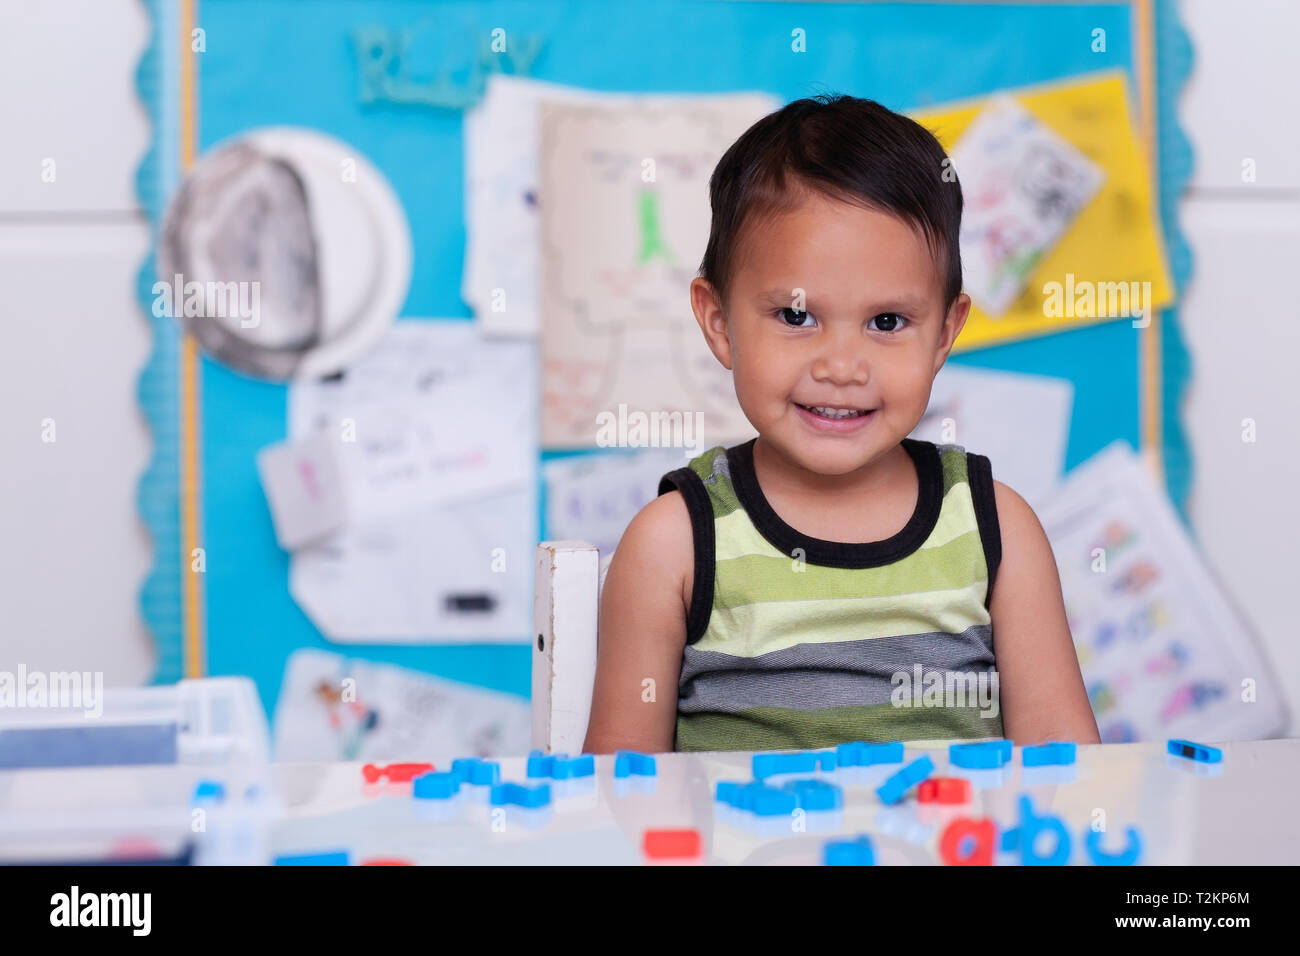 A cute Hispanic boy sitting in daycare with alphabet letters on the table and a colorful bulletin board in the background. Stock Photo